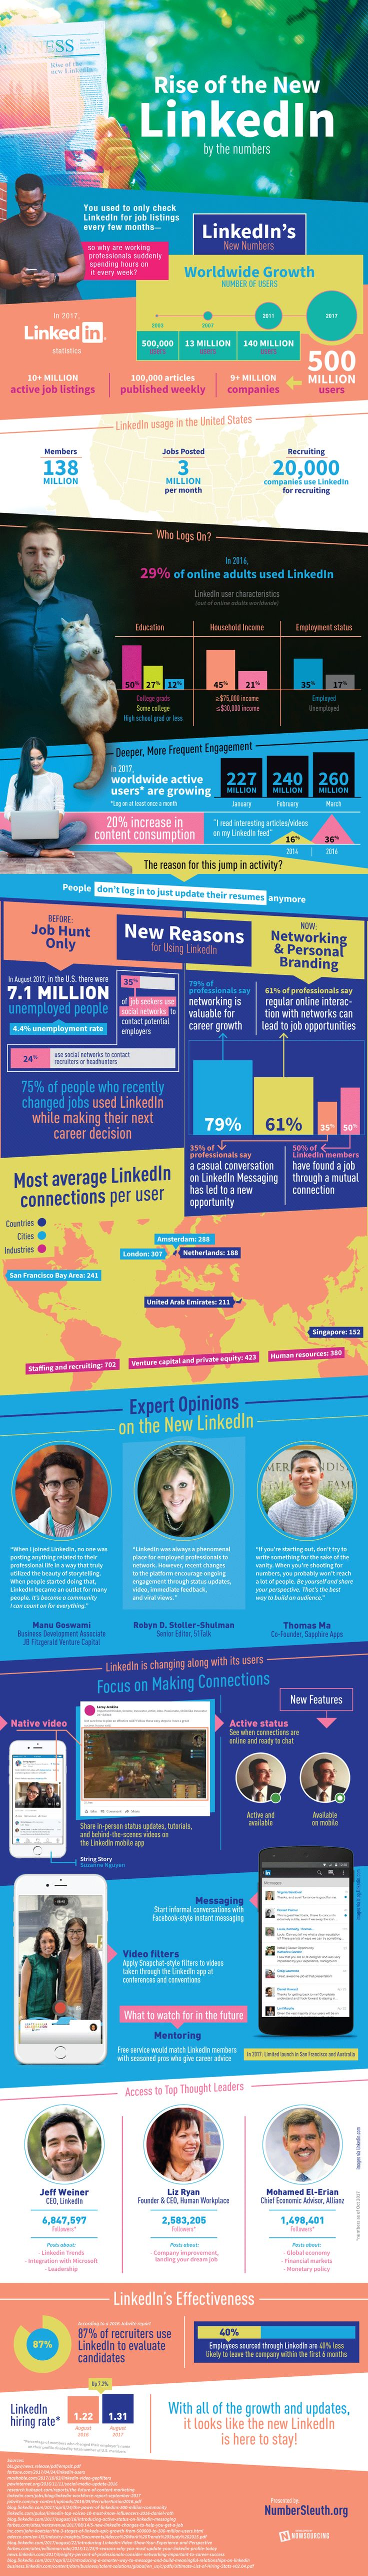 If you haven't logged on to LinkedIn in a while you are behind the curve. Between 2011 and 2017, LinkedIn users grew from 140 million to 500 million people, and it's no longer just a place to update your resume. This infographic outlines how LinkedIn is changing by the numbers.